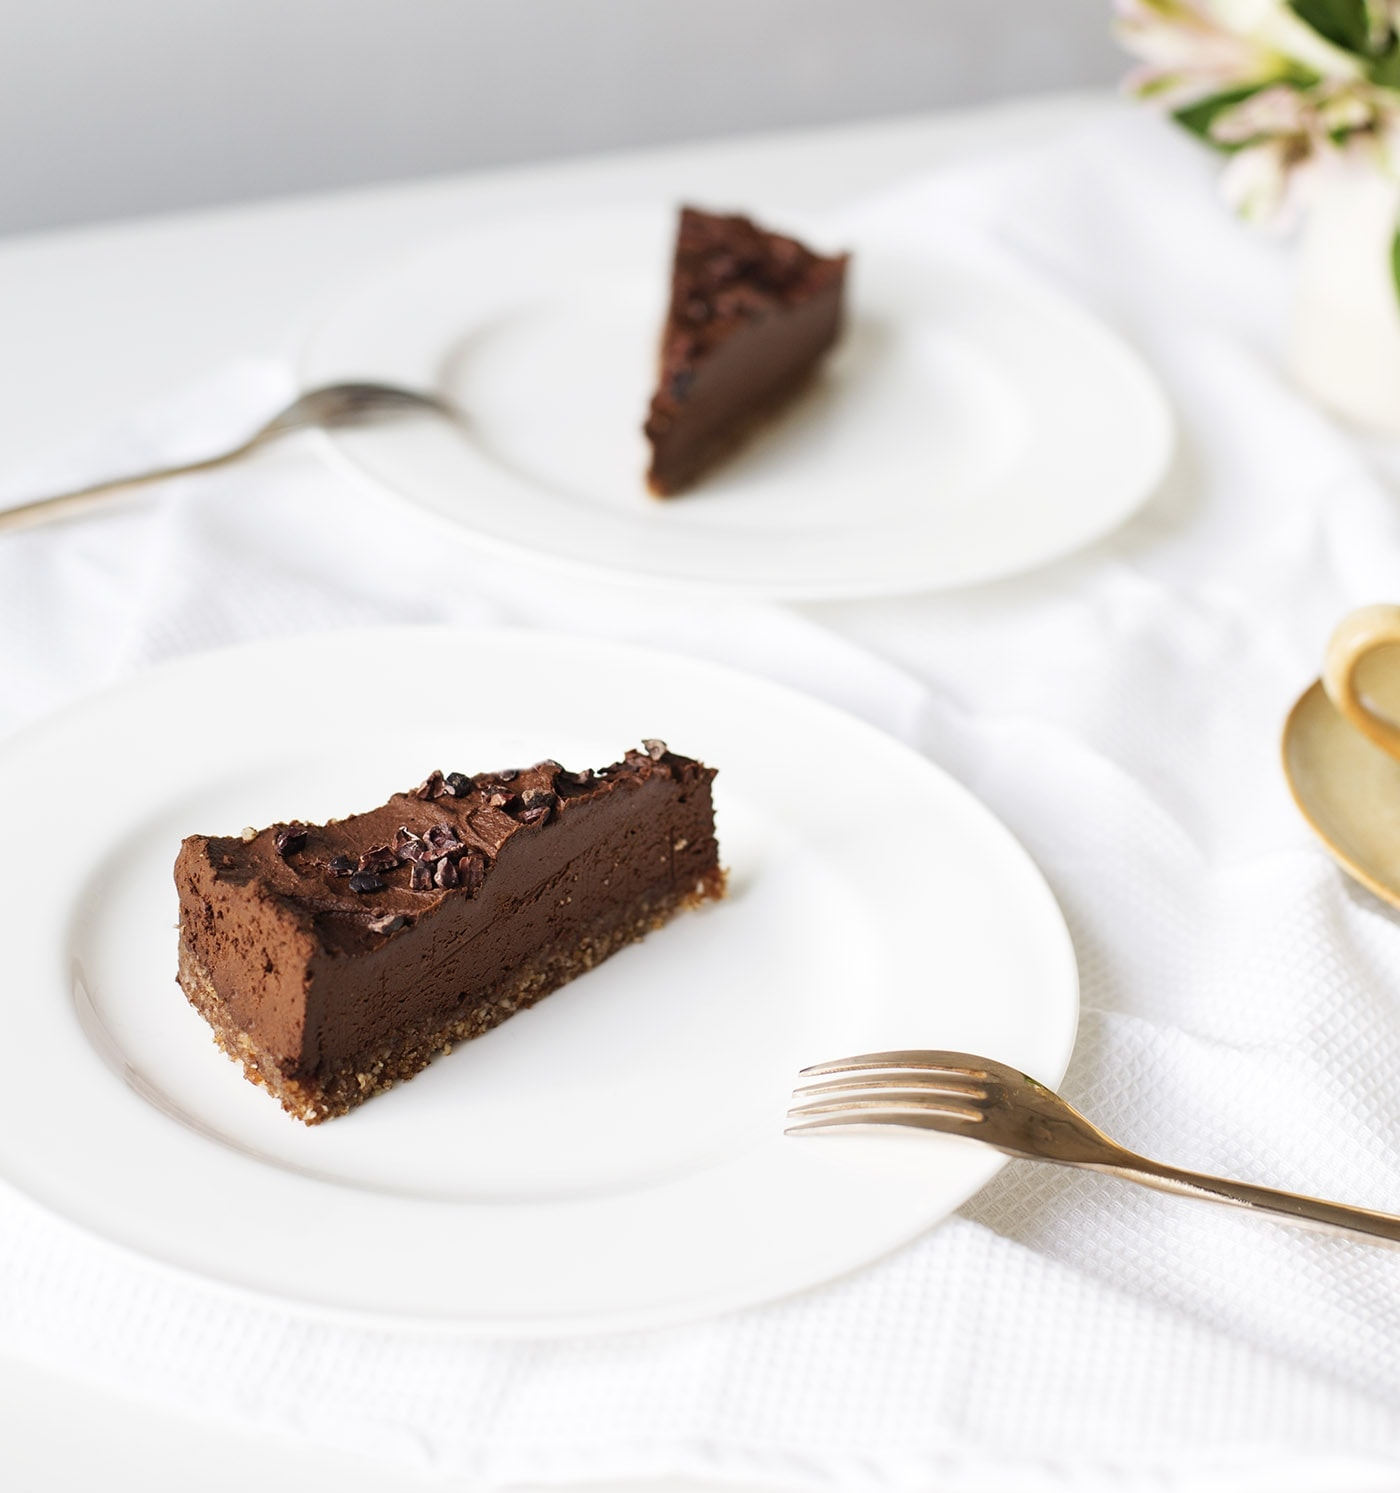 raw-avocado-chocolate-tart-recipe-paleo-dessert-recipe-gluten-free-dairy-free-healthier-sweet-treats